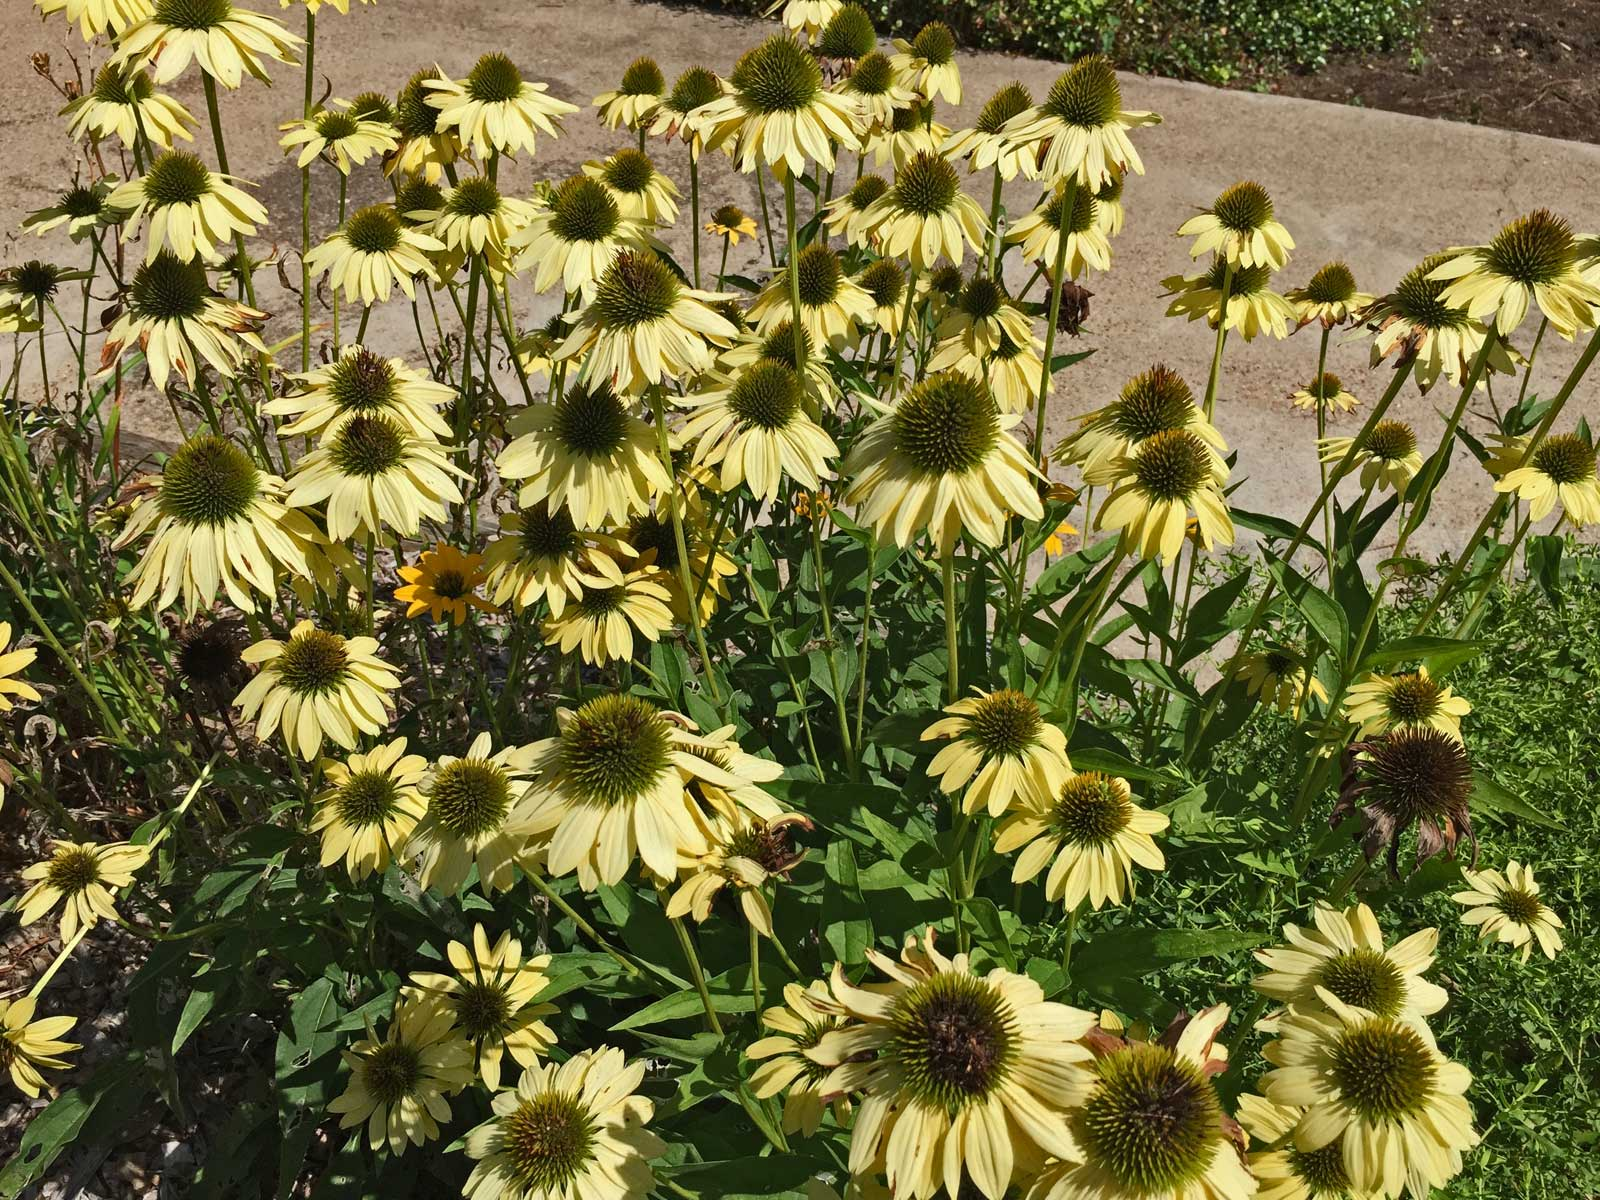 'Sunrise' is a delicate, pale yellow color that provides great contrast it the summer garden.